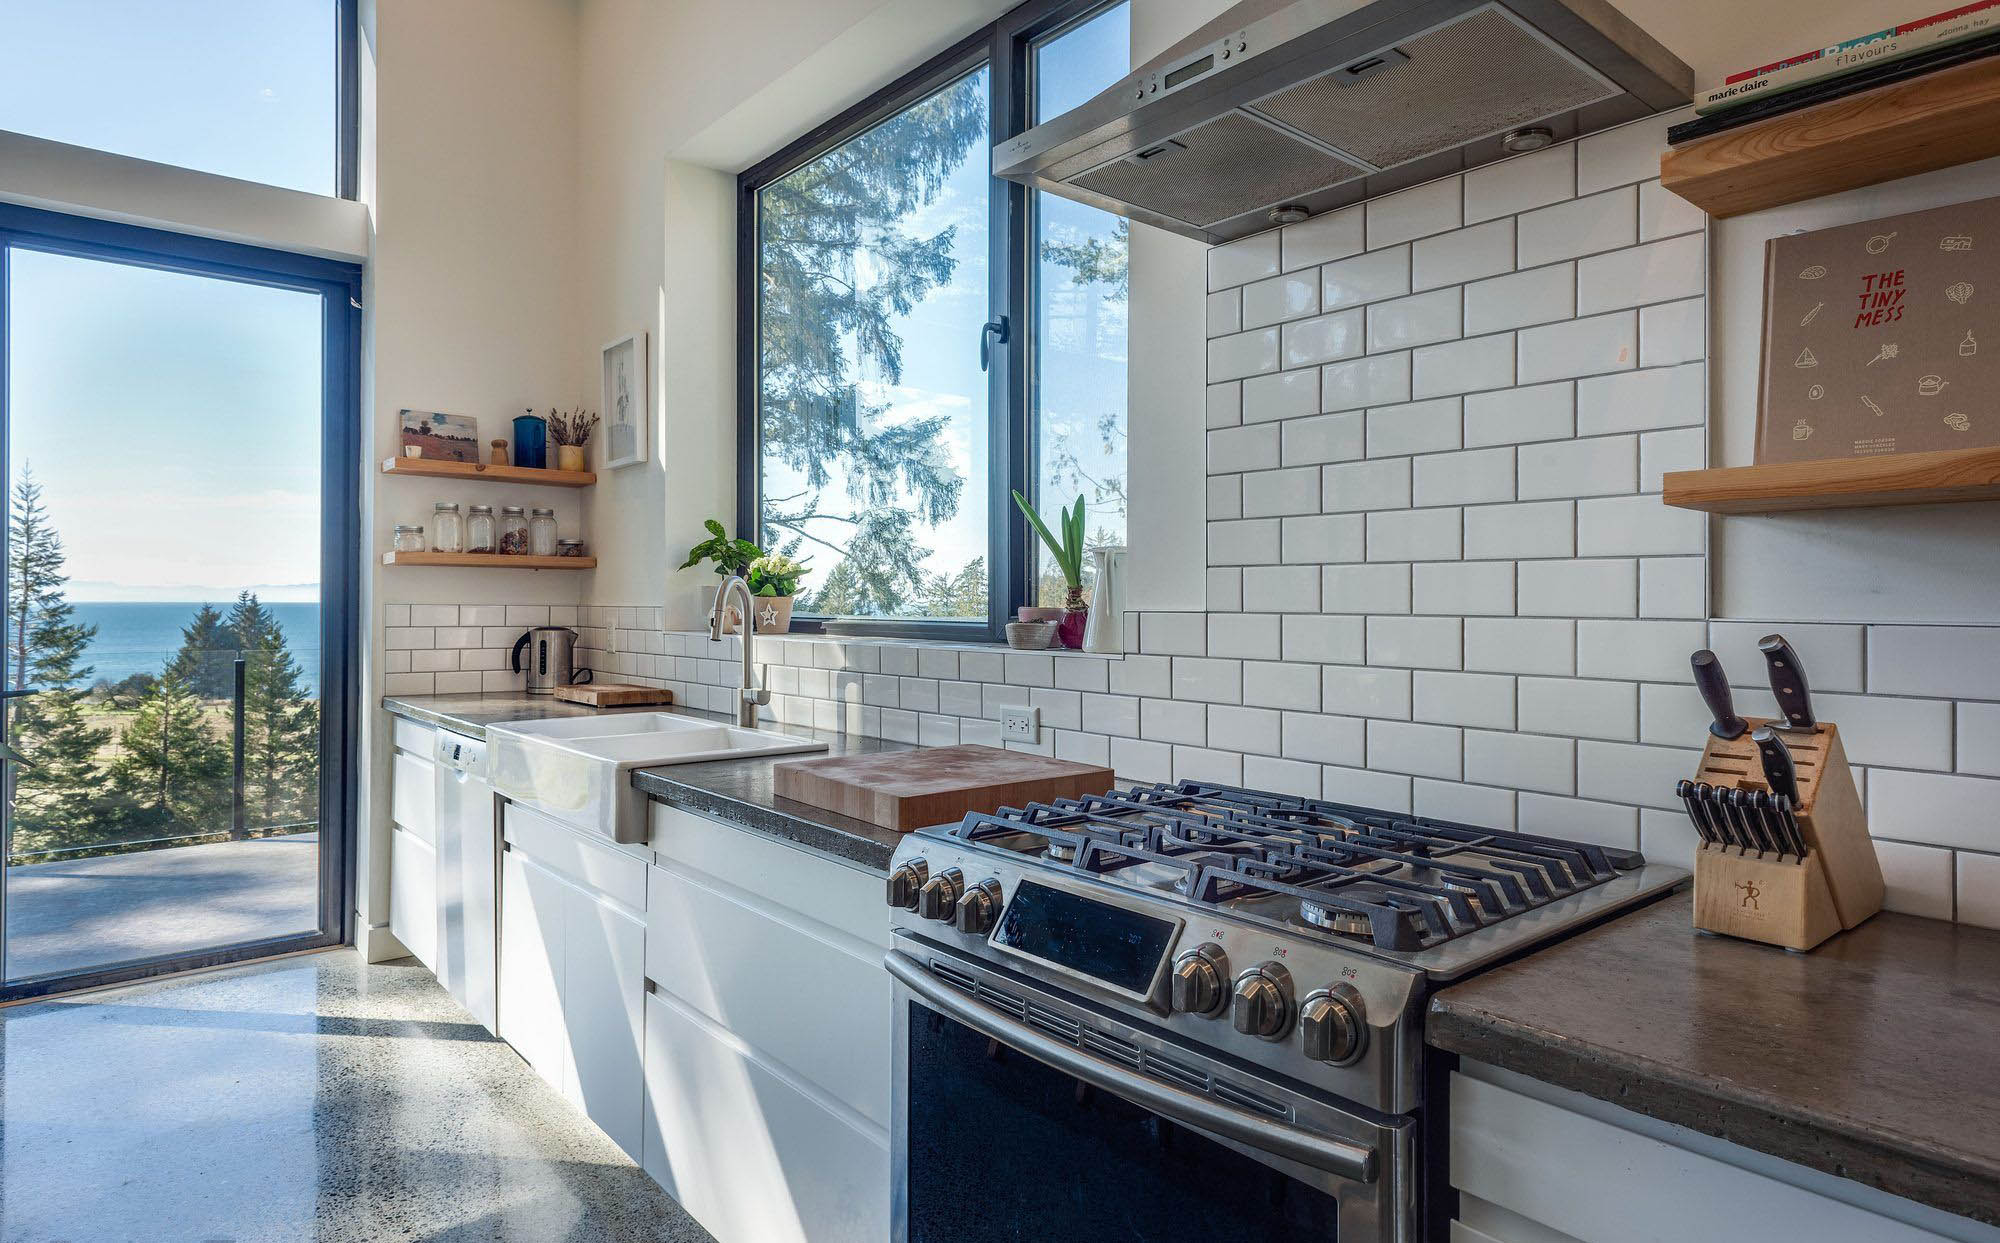 charming country style kitchen with a white enamel farmhouse sink and stainless appliances with white subway tile backsplash